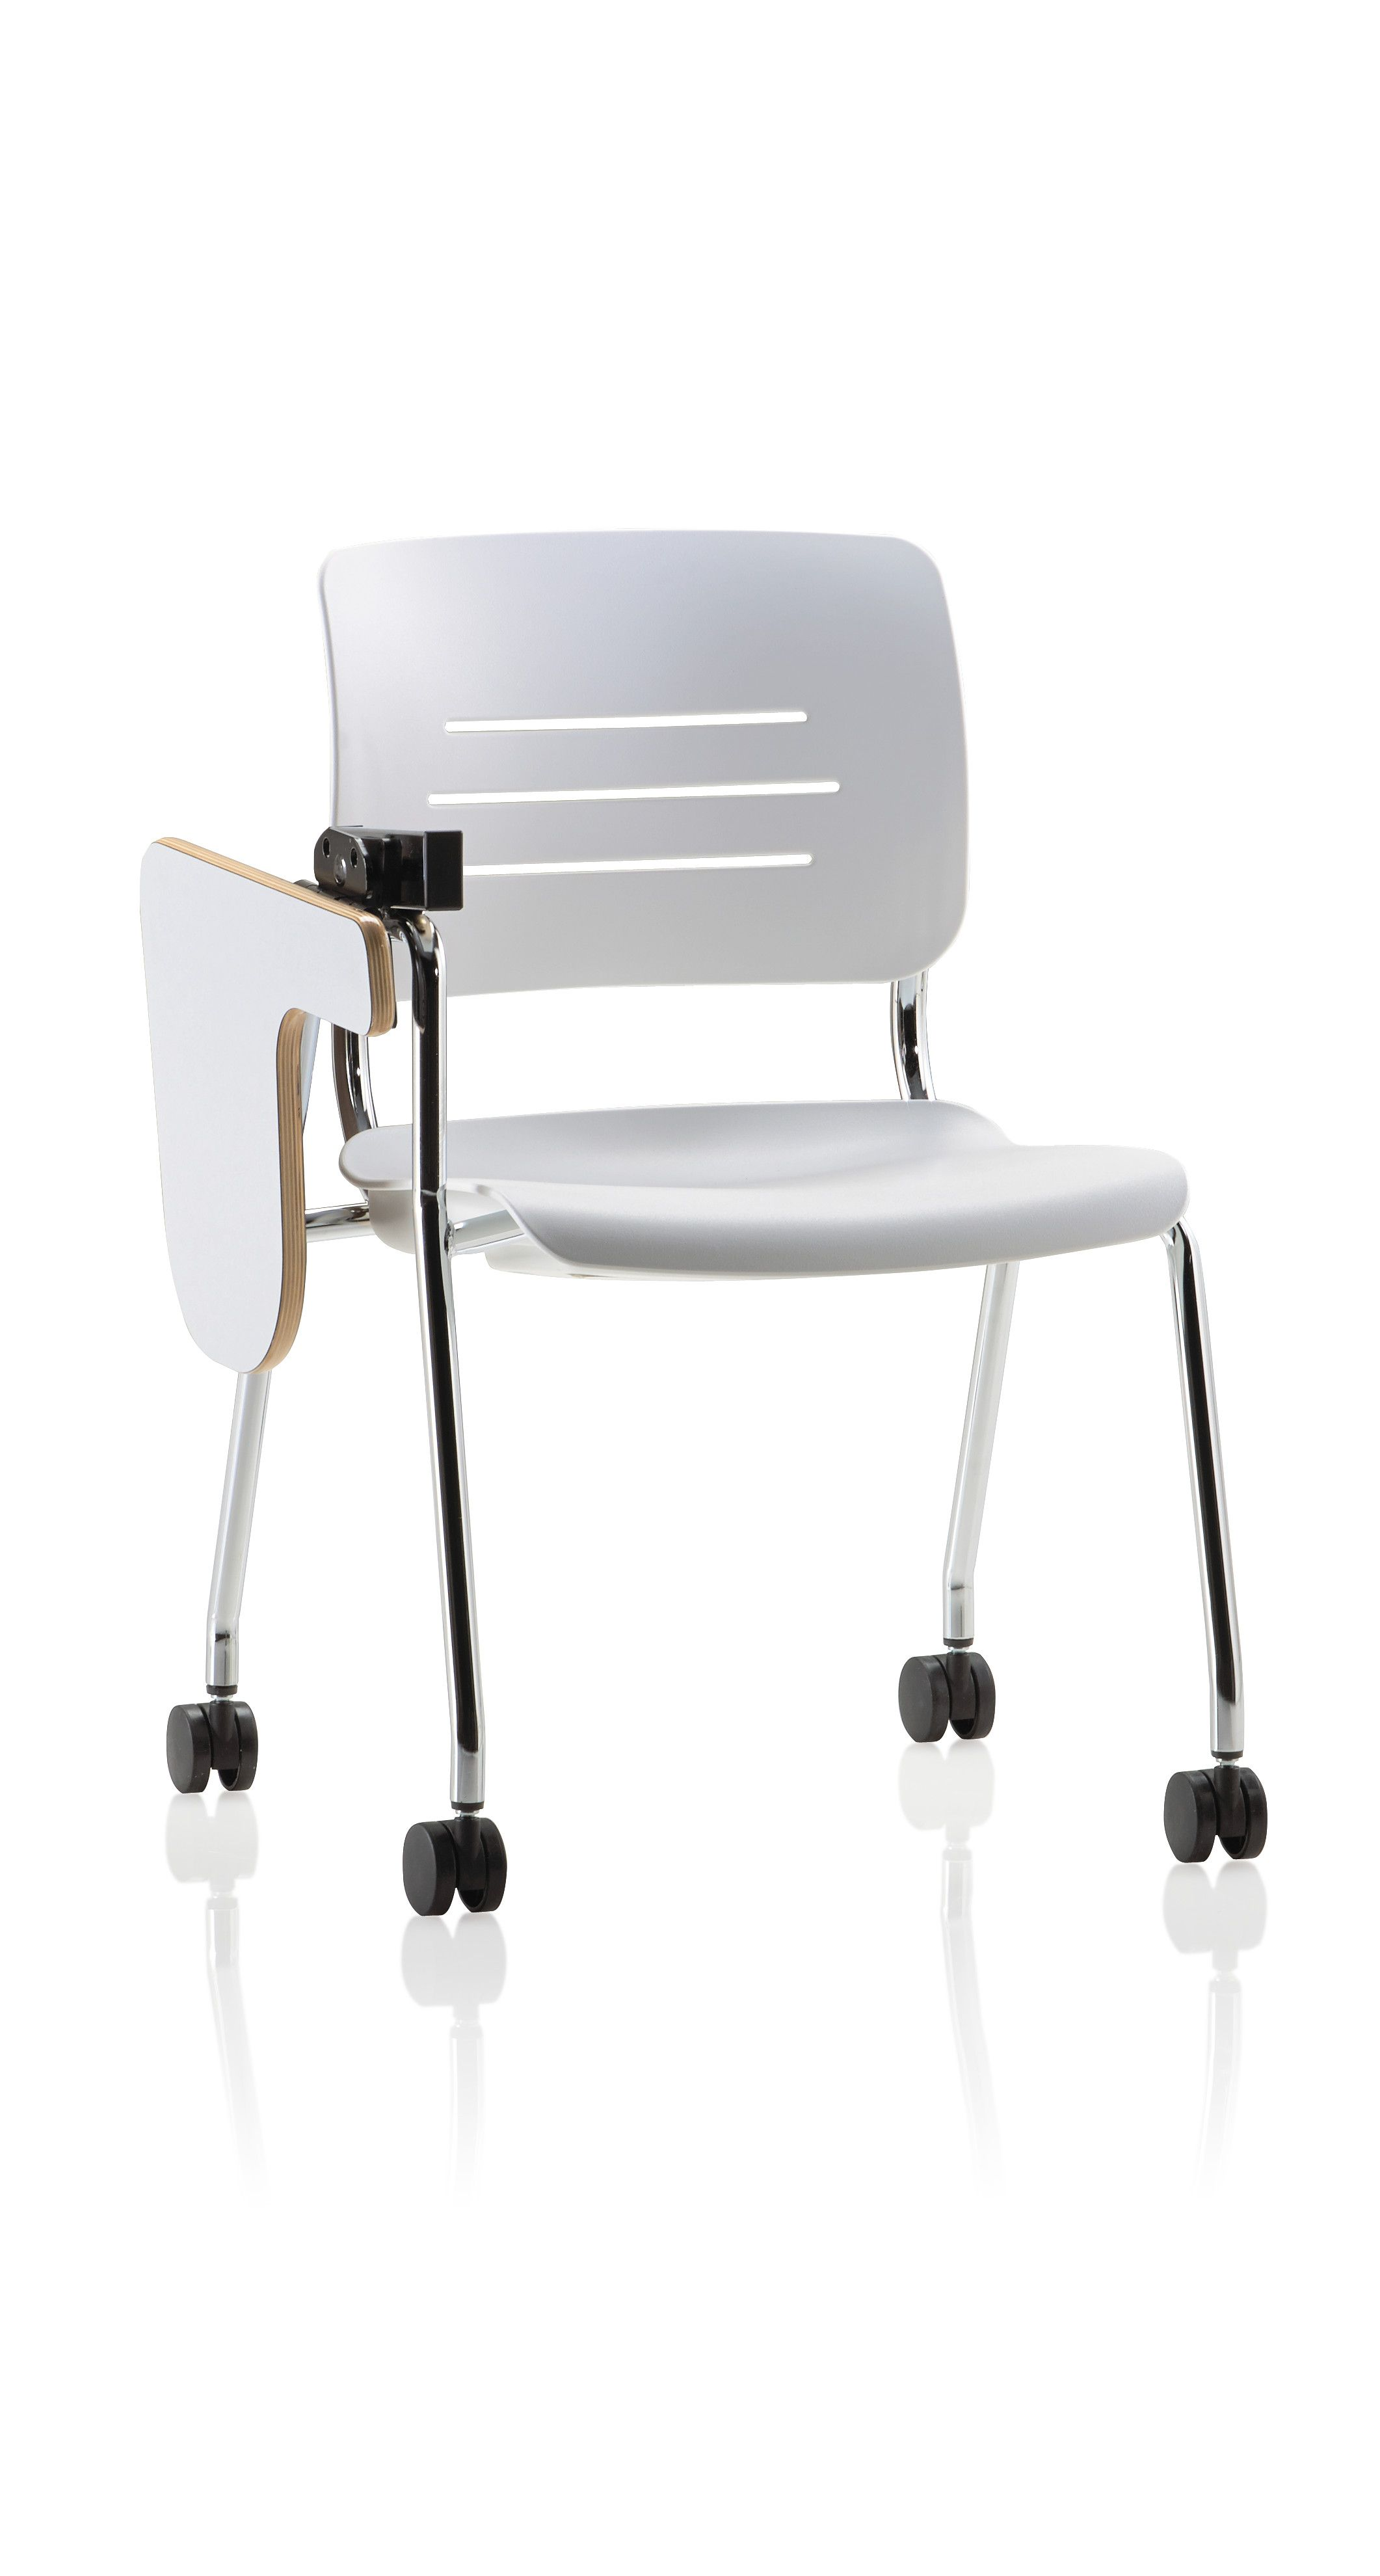 Grazie 4leg with upholstered seat g2 tablet arm plus